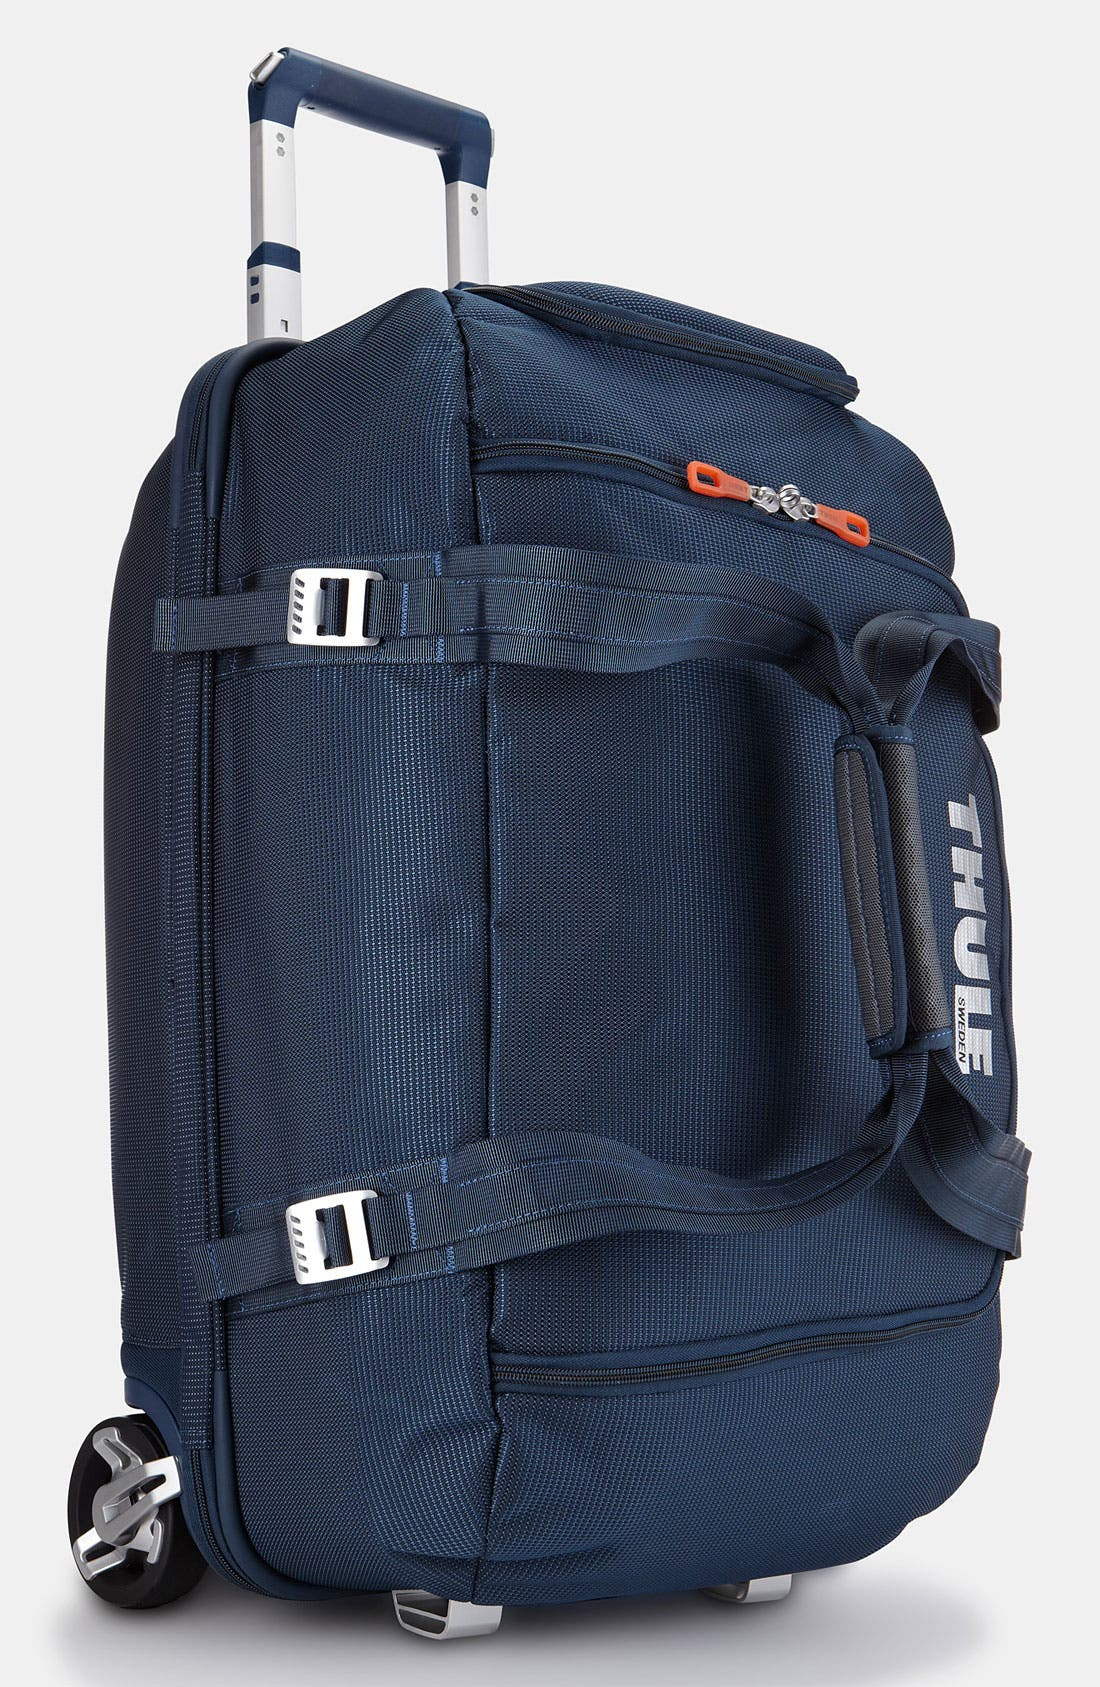 Alternate Image 1 Selected - Thule 'Crossover' Rolling Duffel Bag (56L)